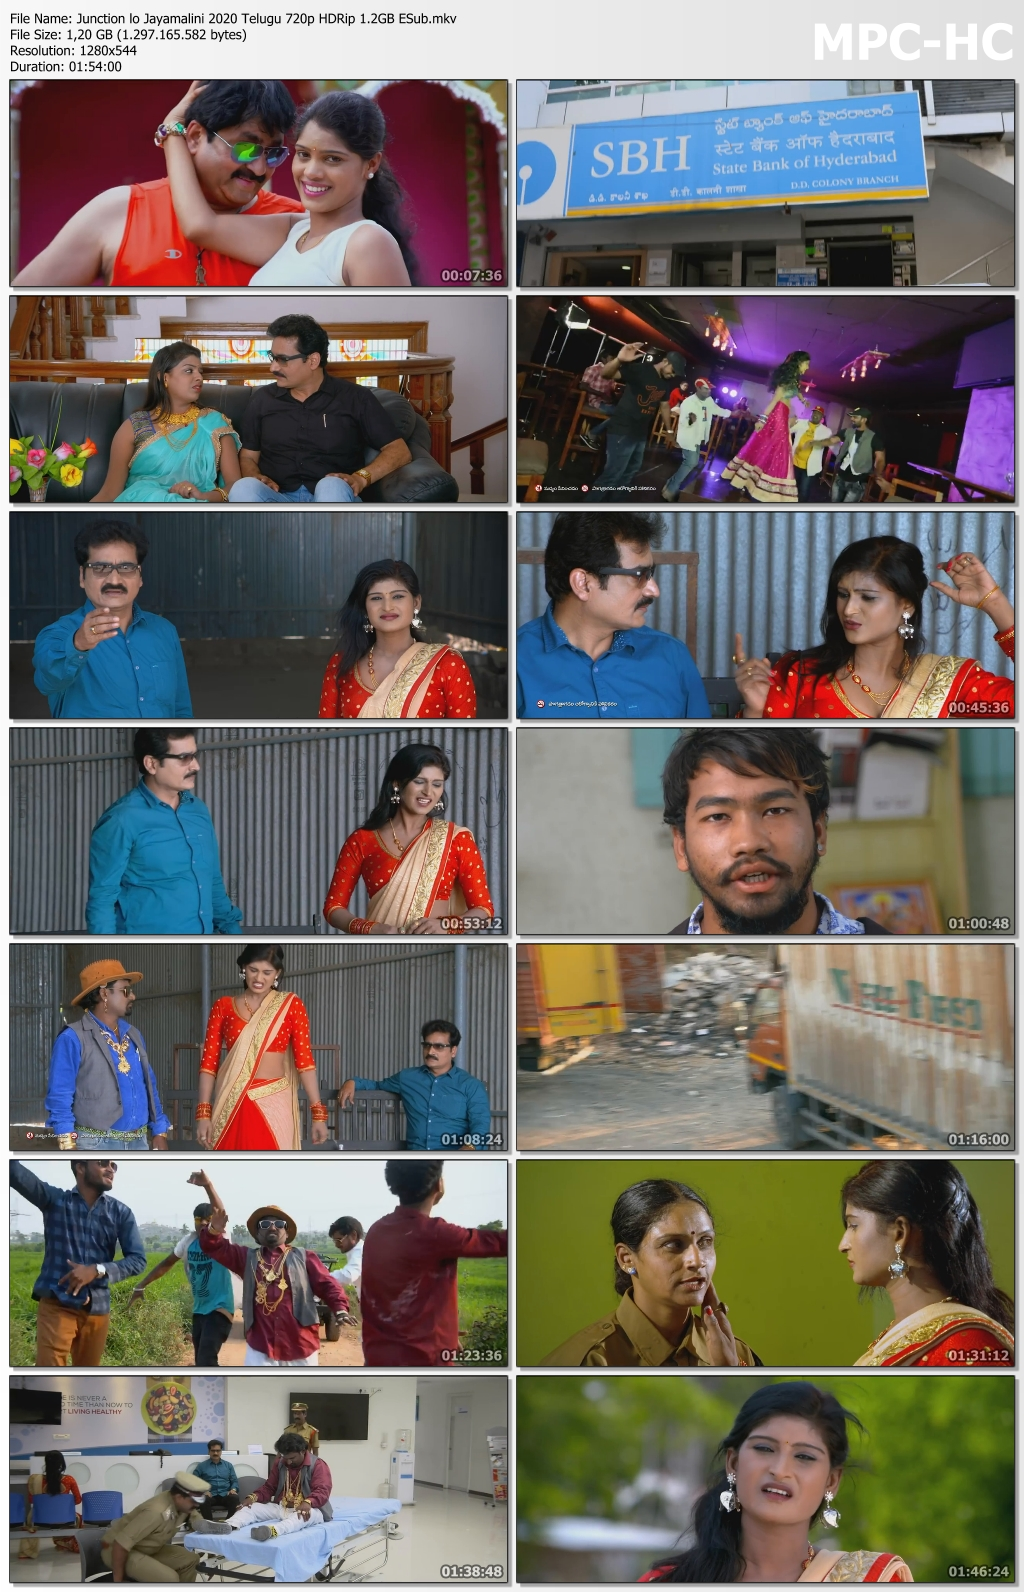 Junction lo Jayamalini 2020 Telugu 720p HDRip ESub 1.2GB